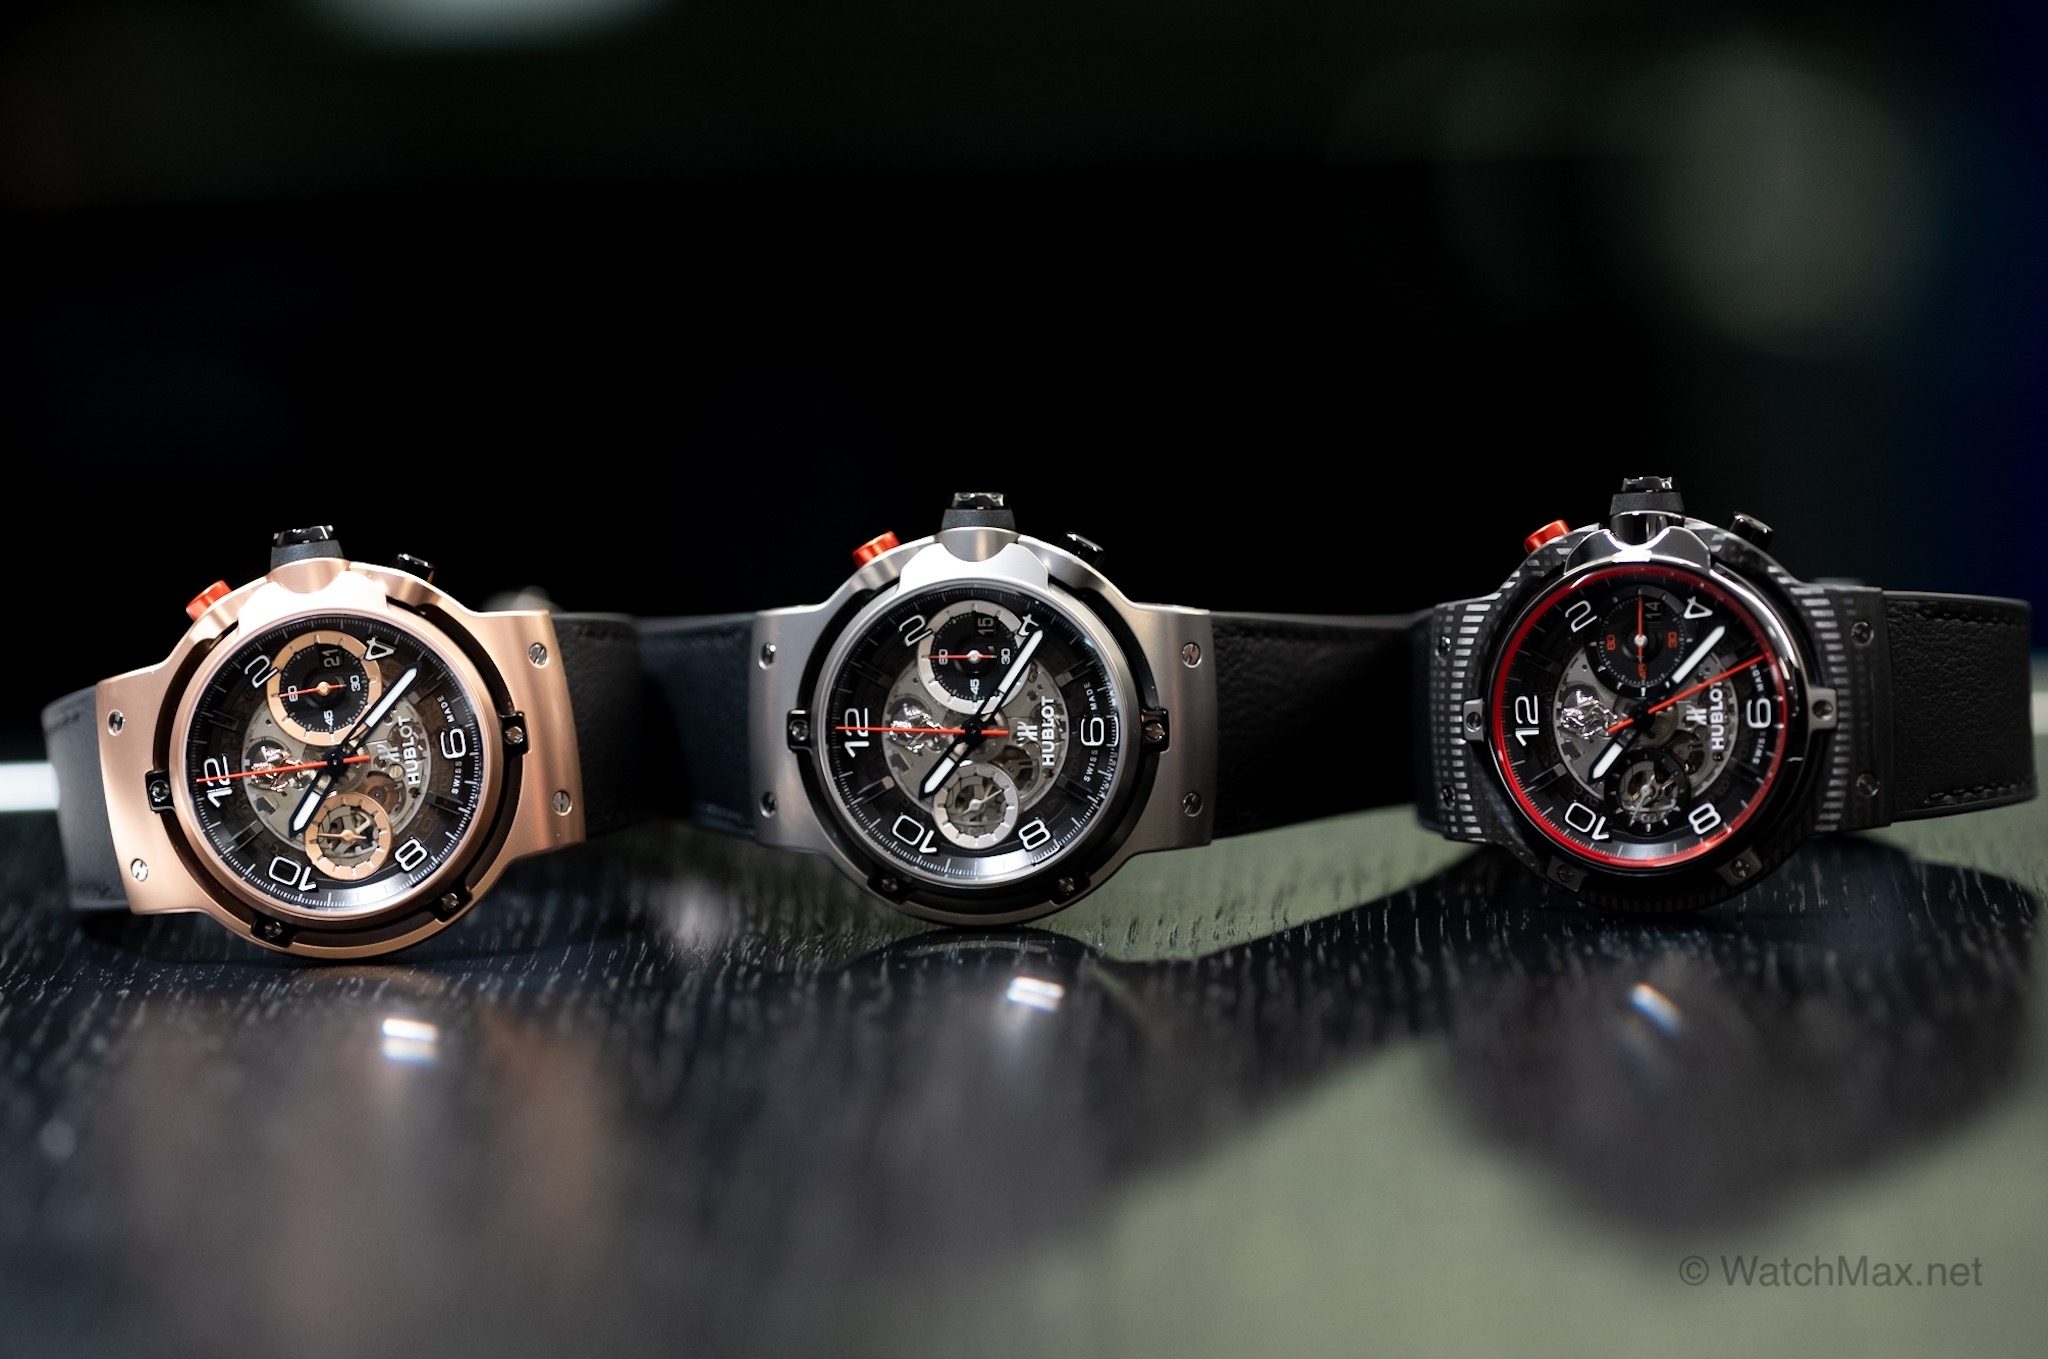 Hublot's Ferrari watches novelties first look @ Baselworld 2019 - Celebrating Scuderia Ferrari's 90th anniversary, Hublot releases two sets of watches. One of which is truly novel and could become a collectible item for fans of both brands. Read more…